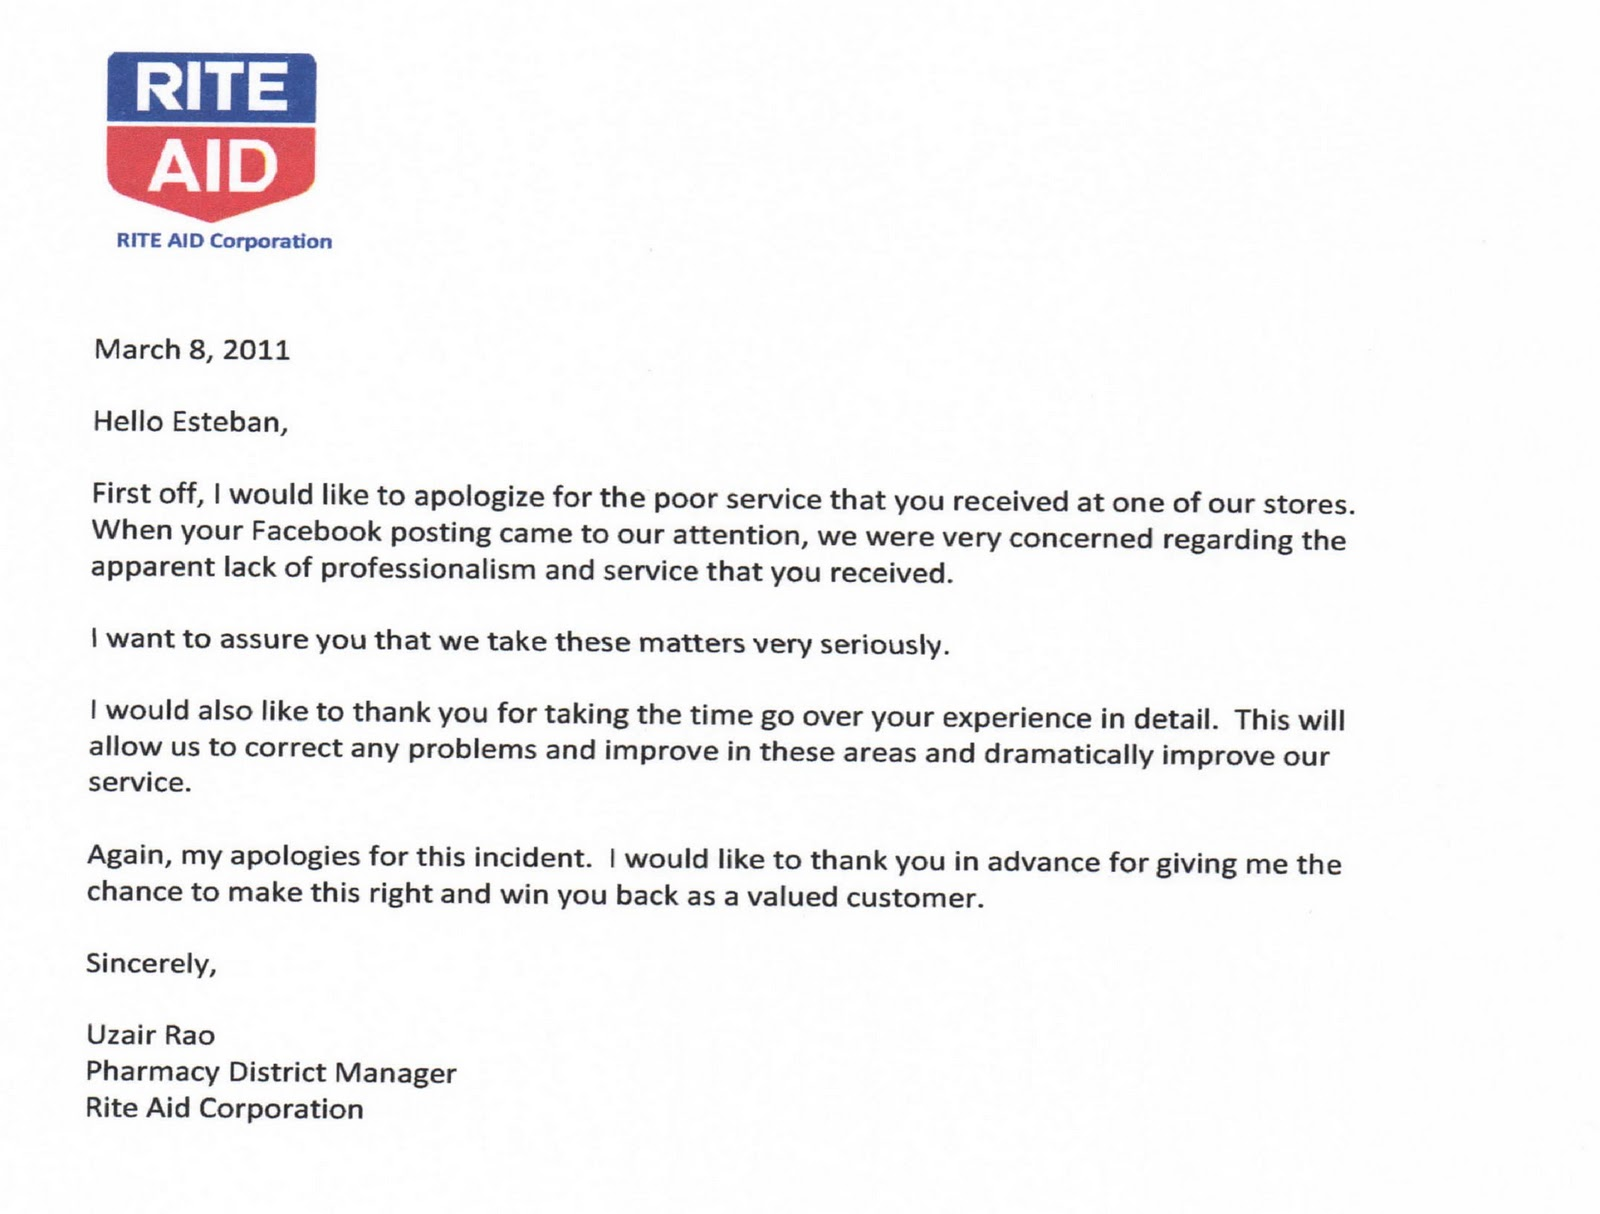 rite aid pharmacy and store apology letter to esteban